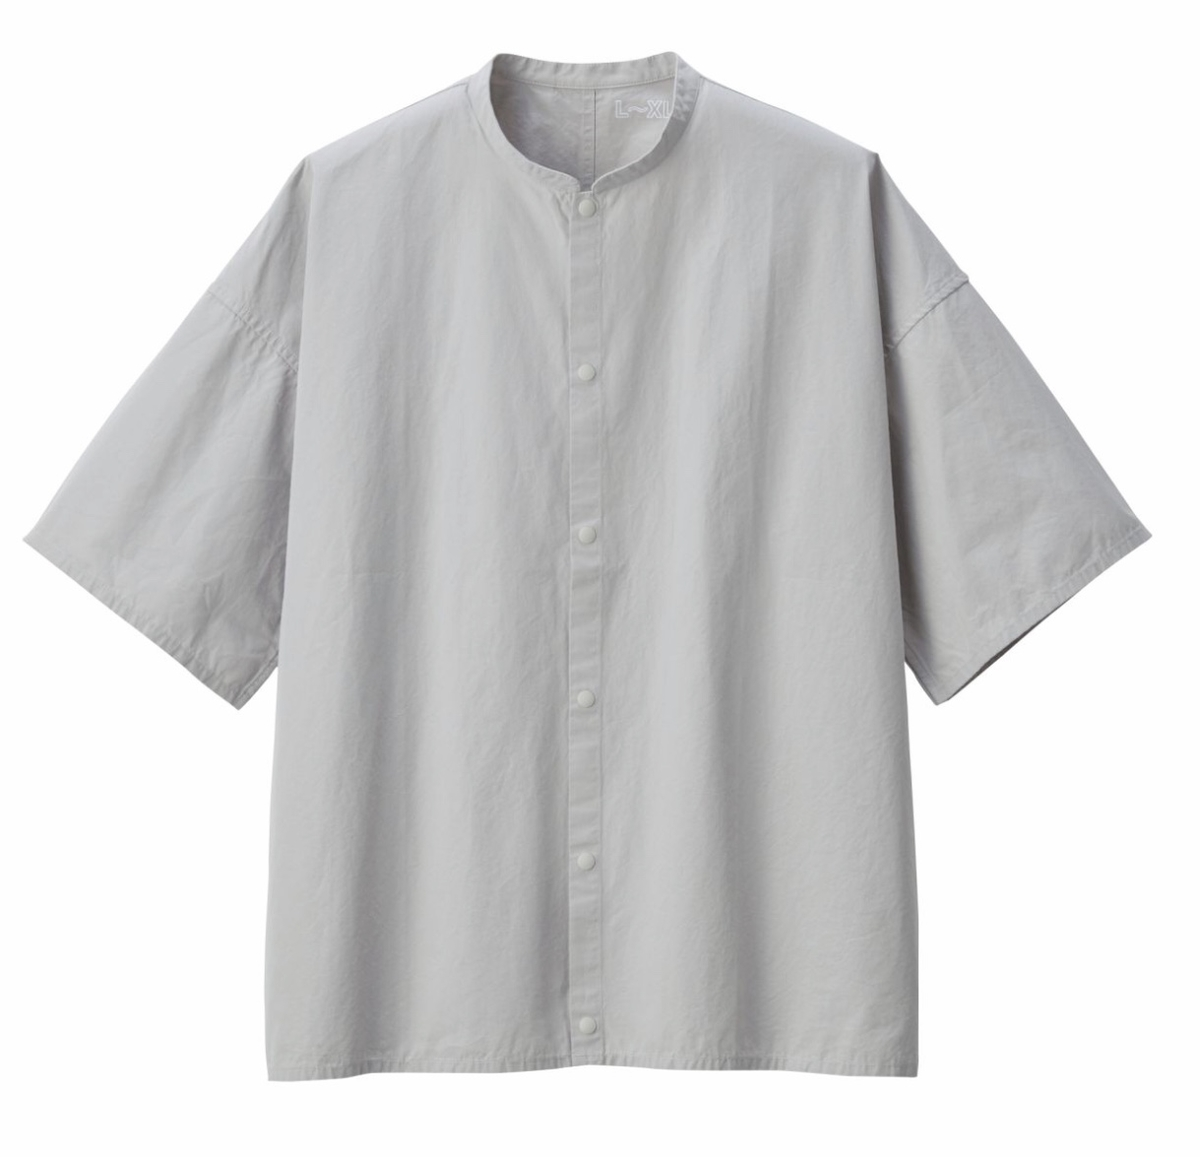 f:id:fortheshirt:20190603115746j:plain